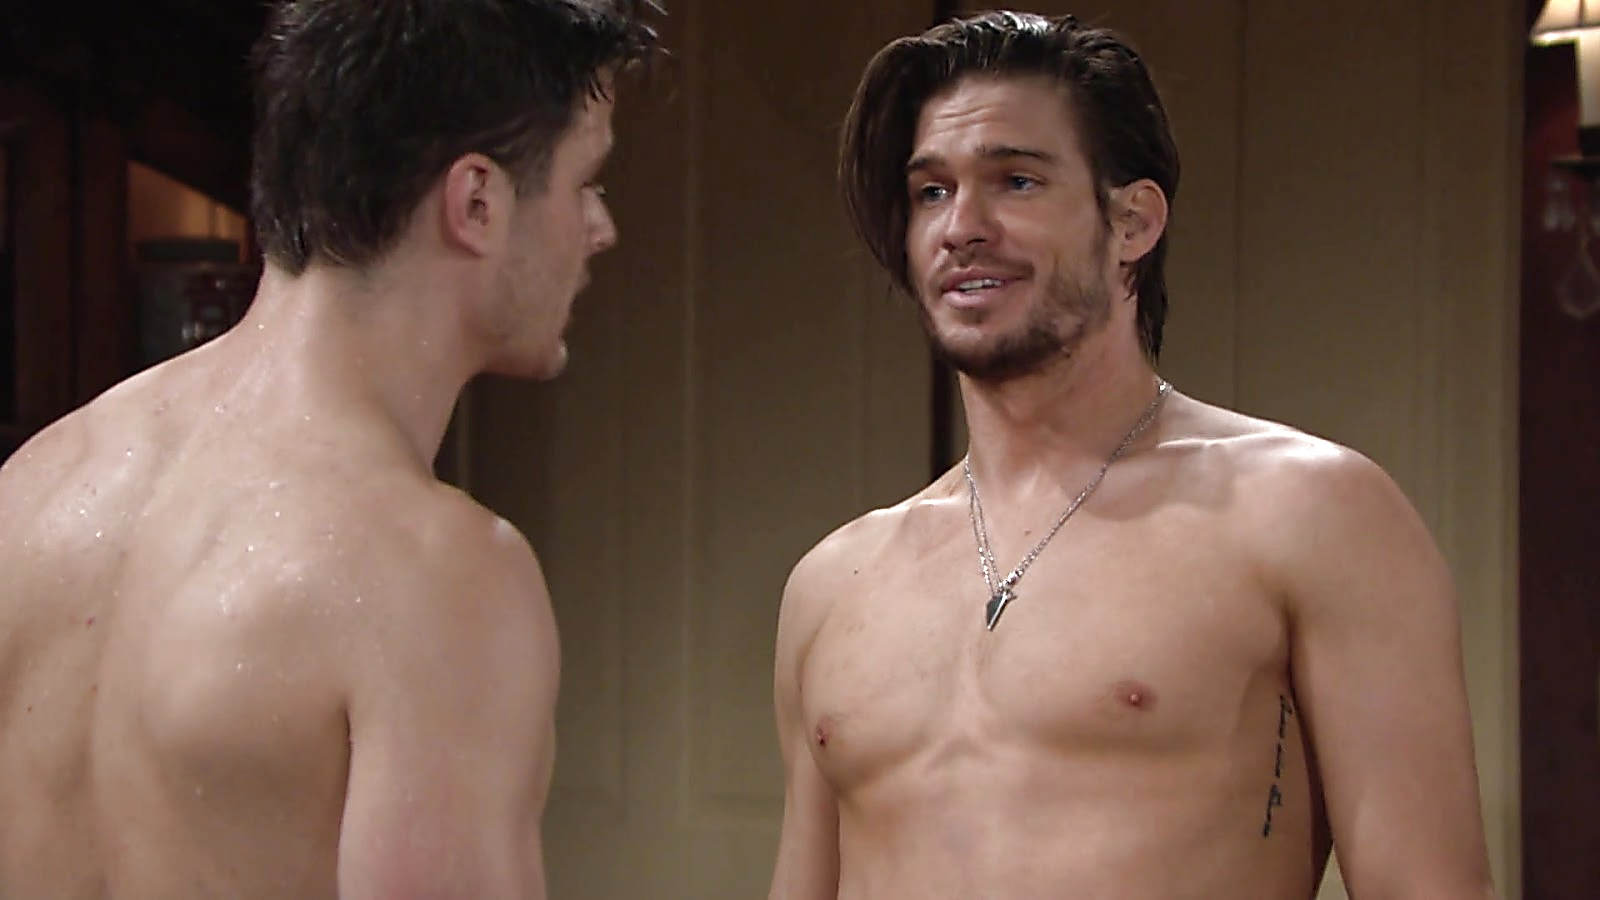 Tyler Johnson sexy shirtless scene July 12, 2019, 1pm